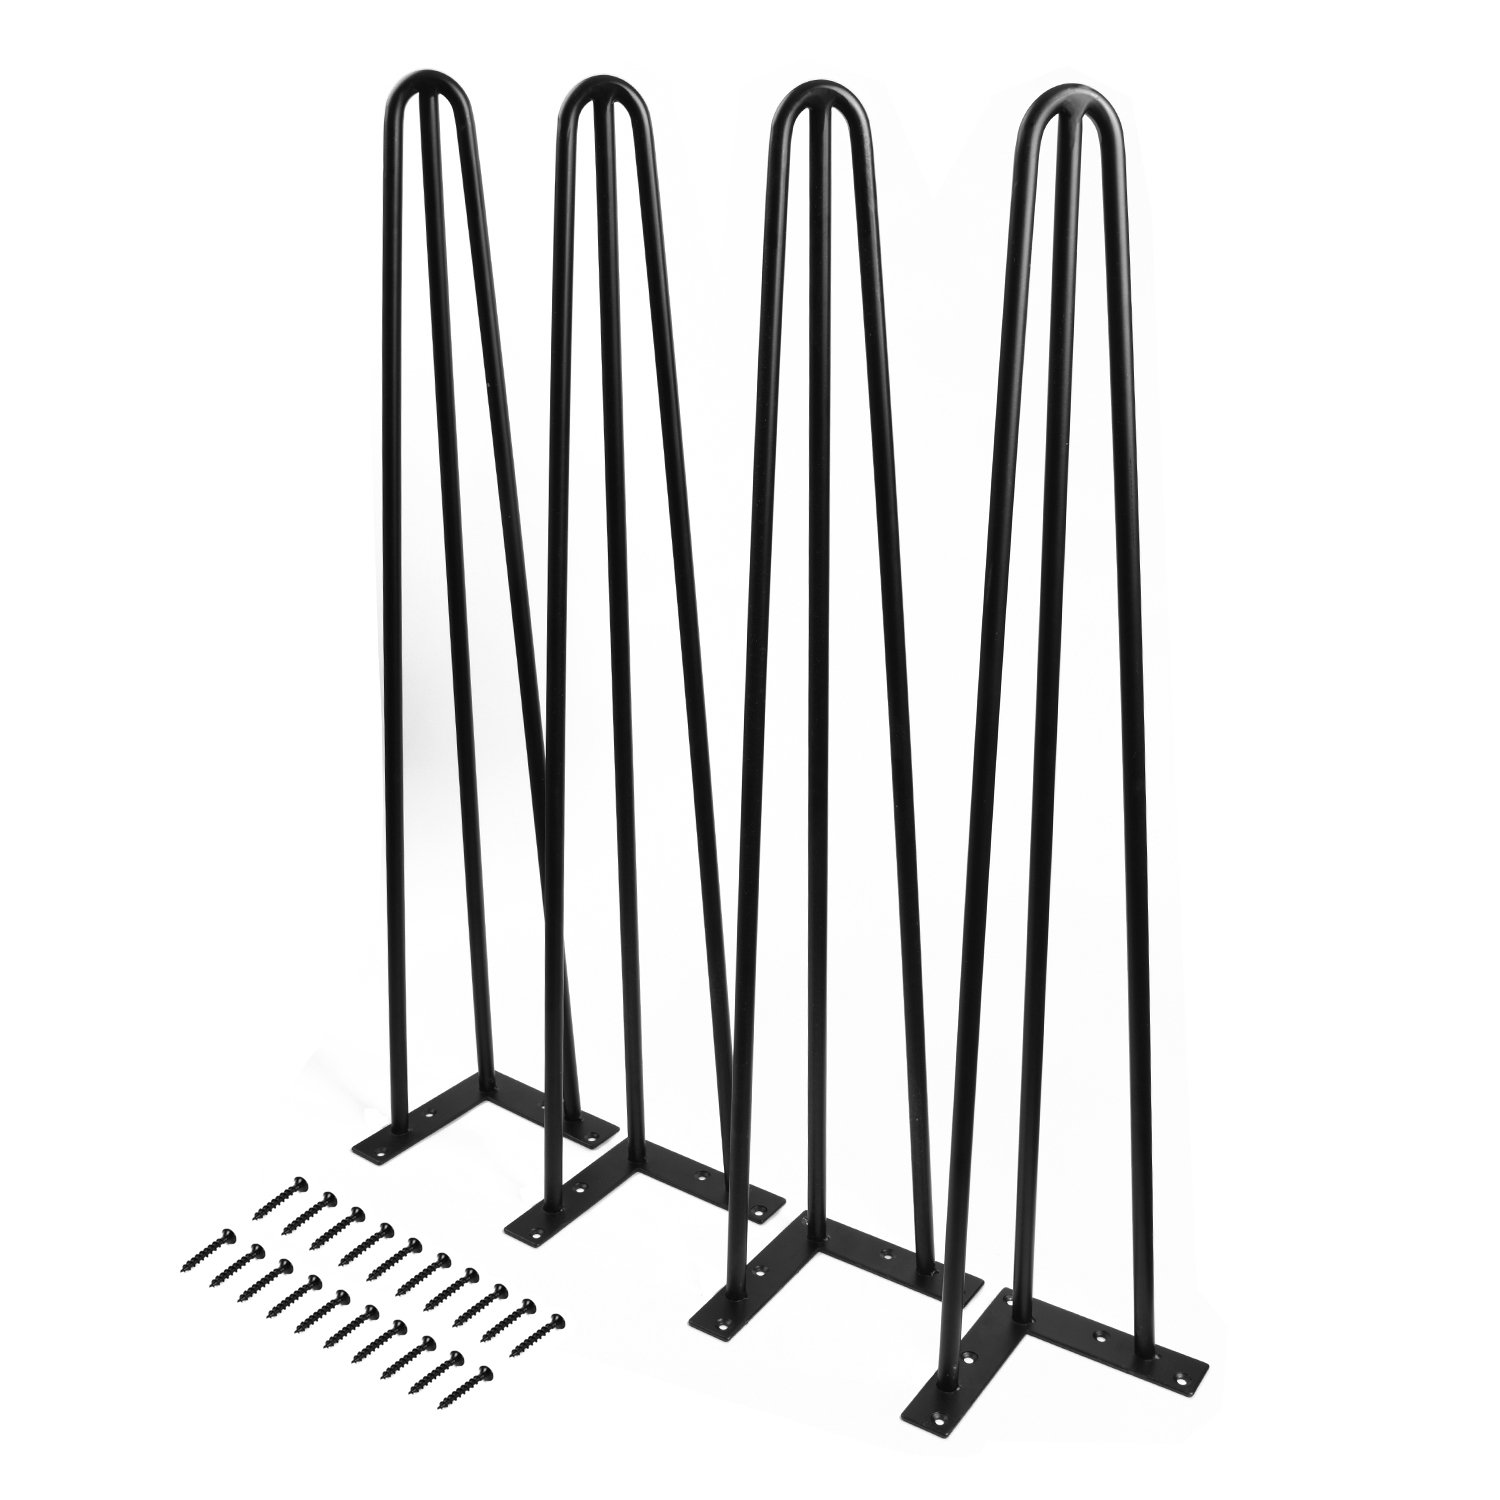 SMARTSTANDARD 28'' Heavy Duty Hairpin Coffee Table Legs (Set of 4), Metal Home DIY Projects for Furniture, with Bonus Rubber Floor Protectors, Black by SMARTSTANDARD